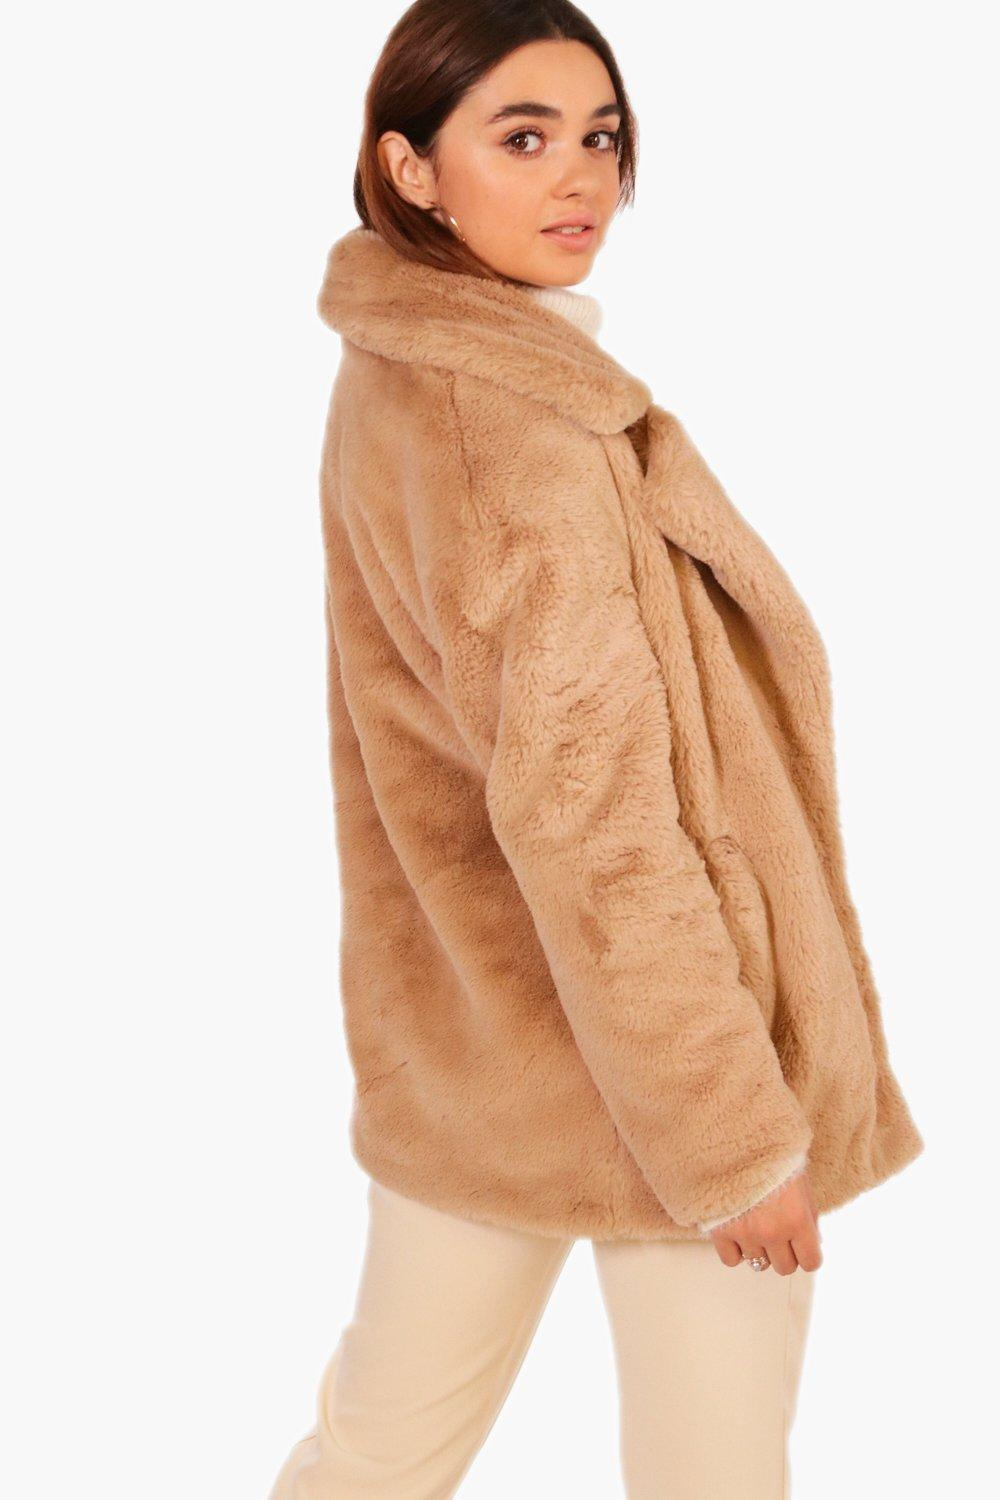 9b52a059172 Boohoo Petite Oversized Collar Luxe Faux Fur Coat in Natural - Lyst